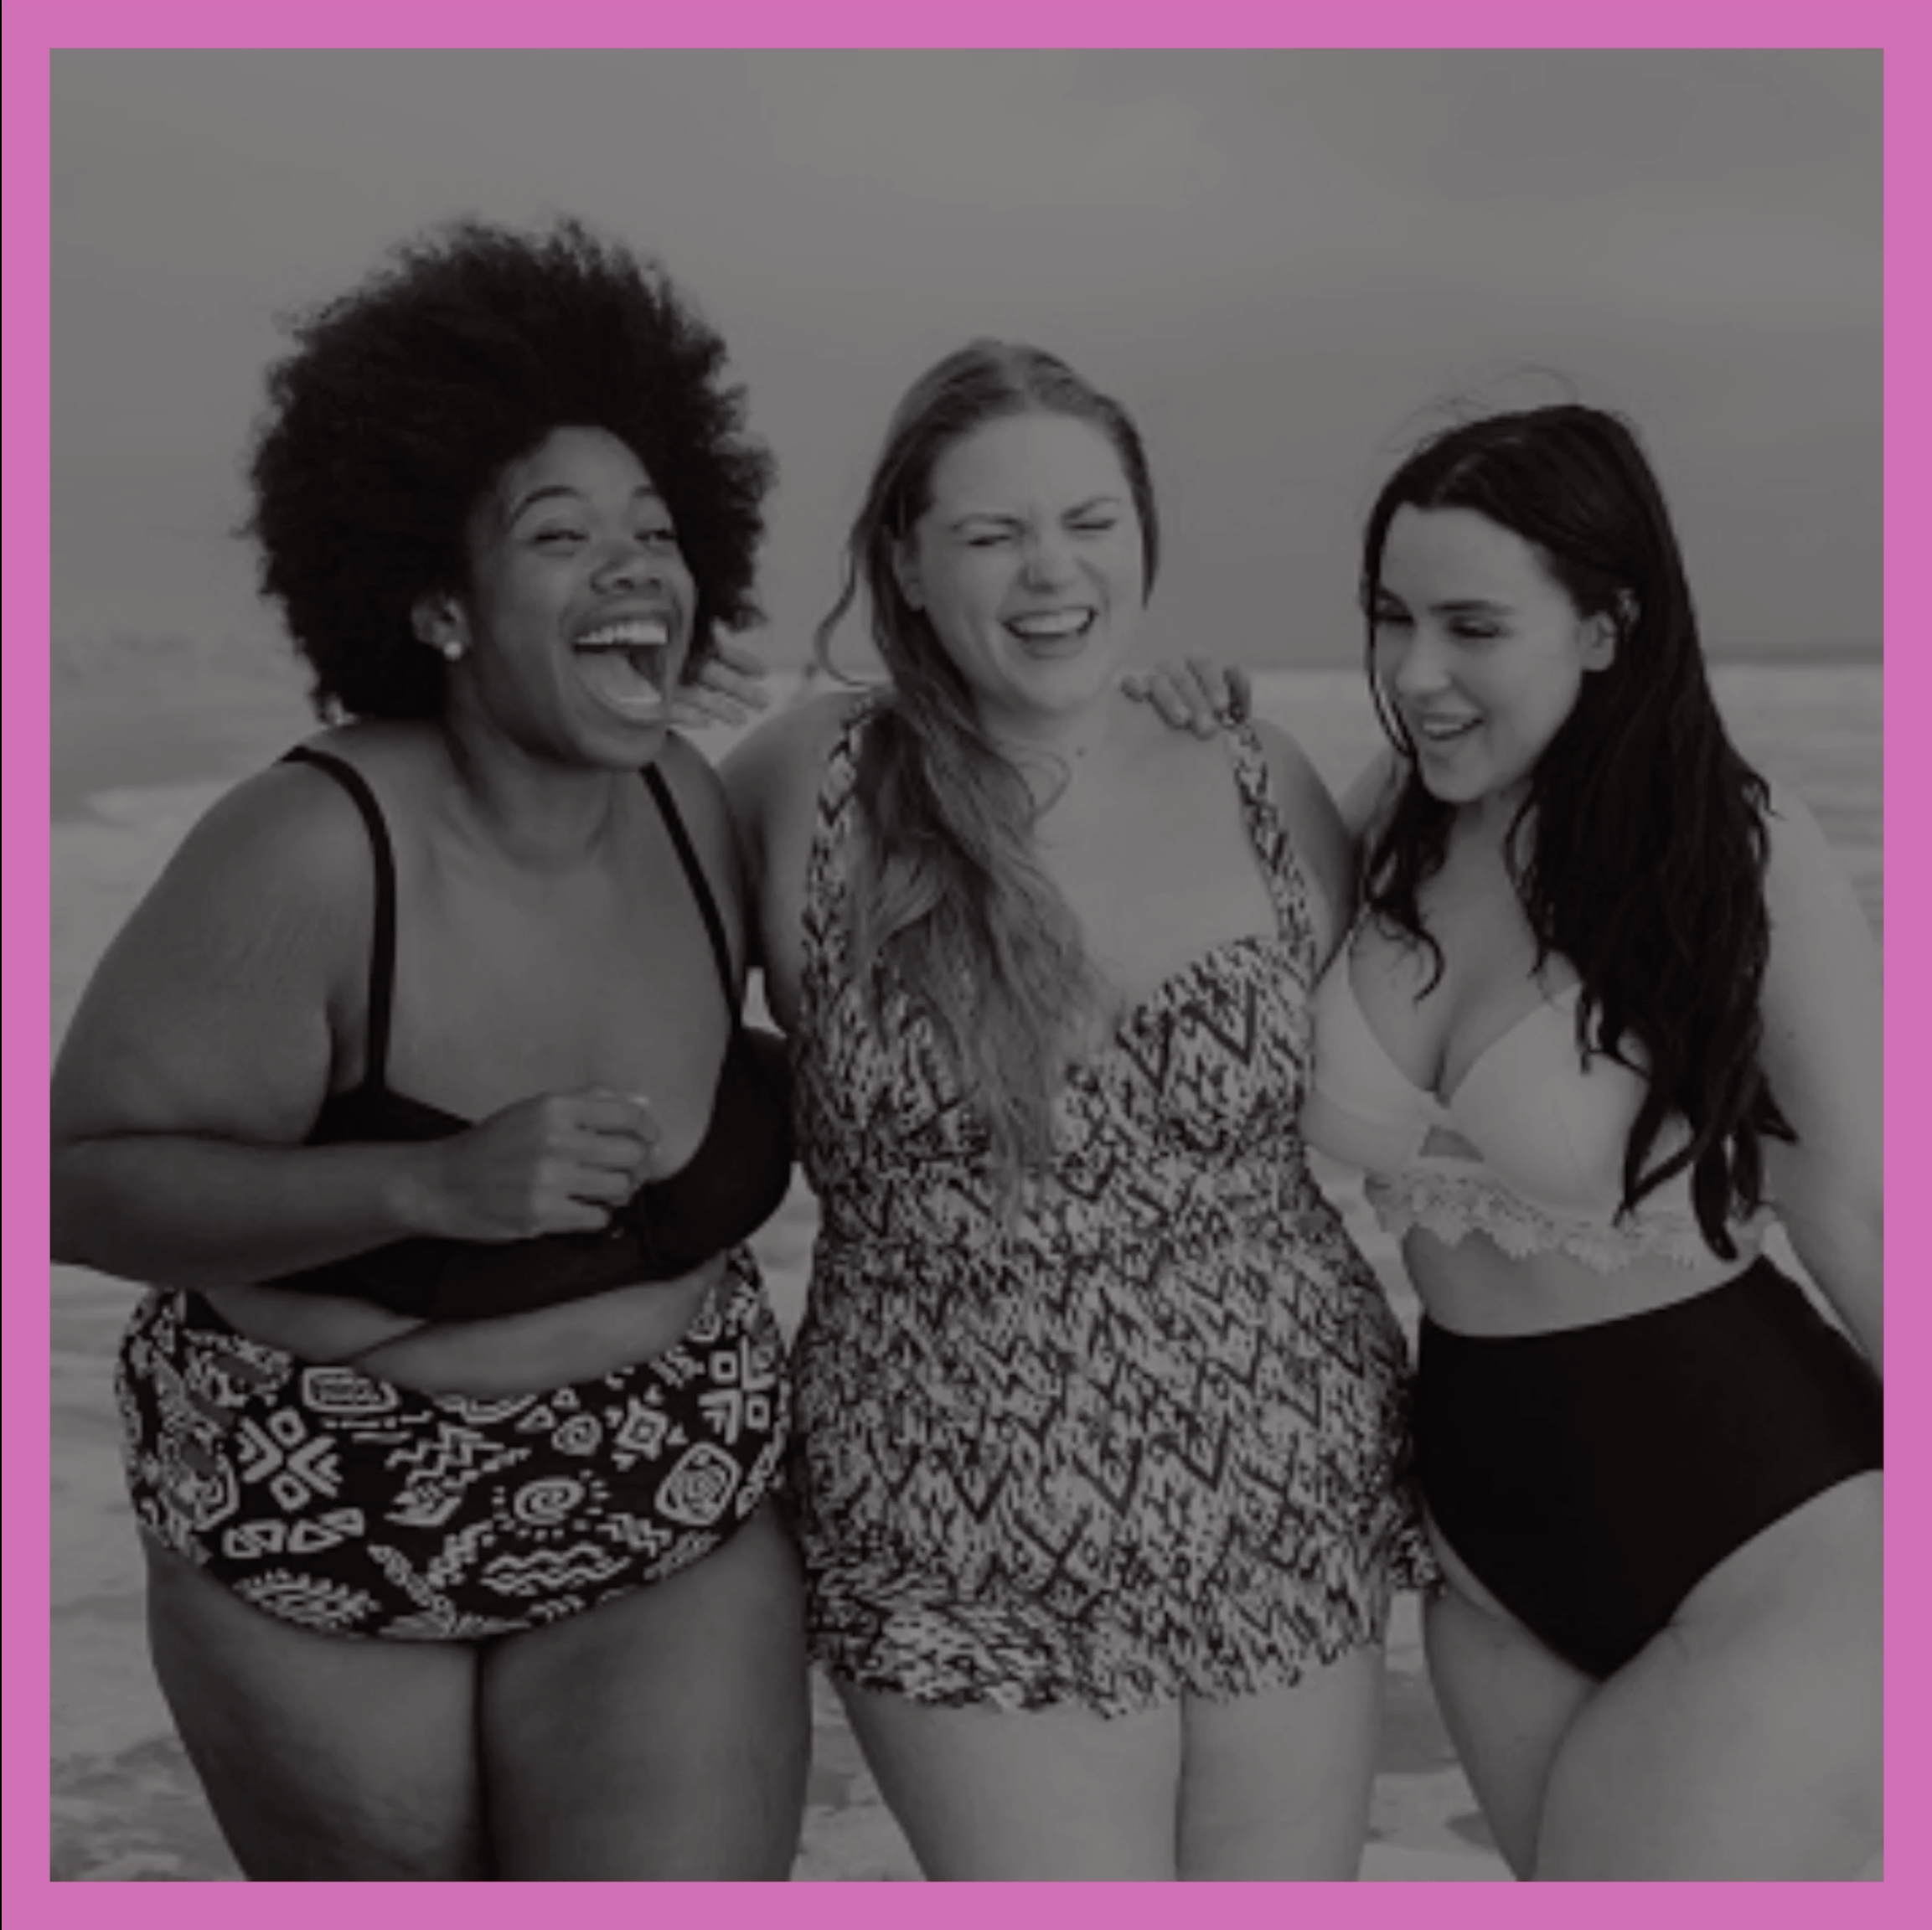 An image of some women on a beach